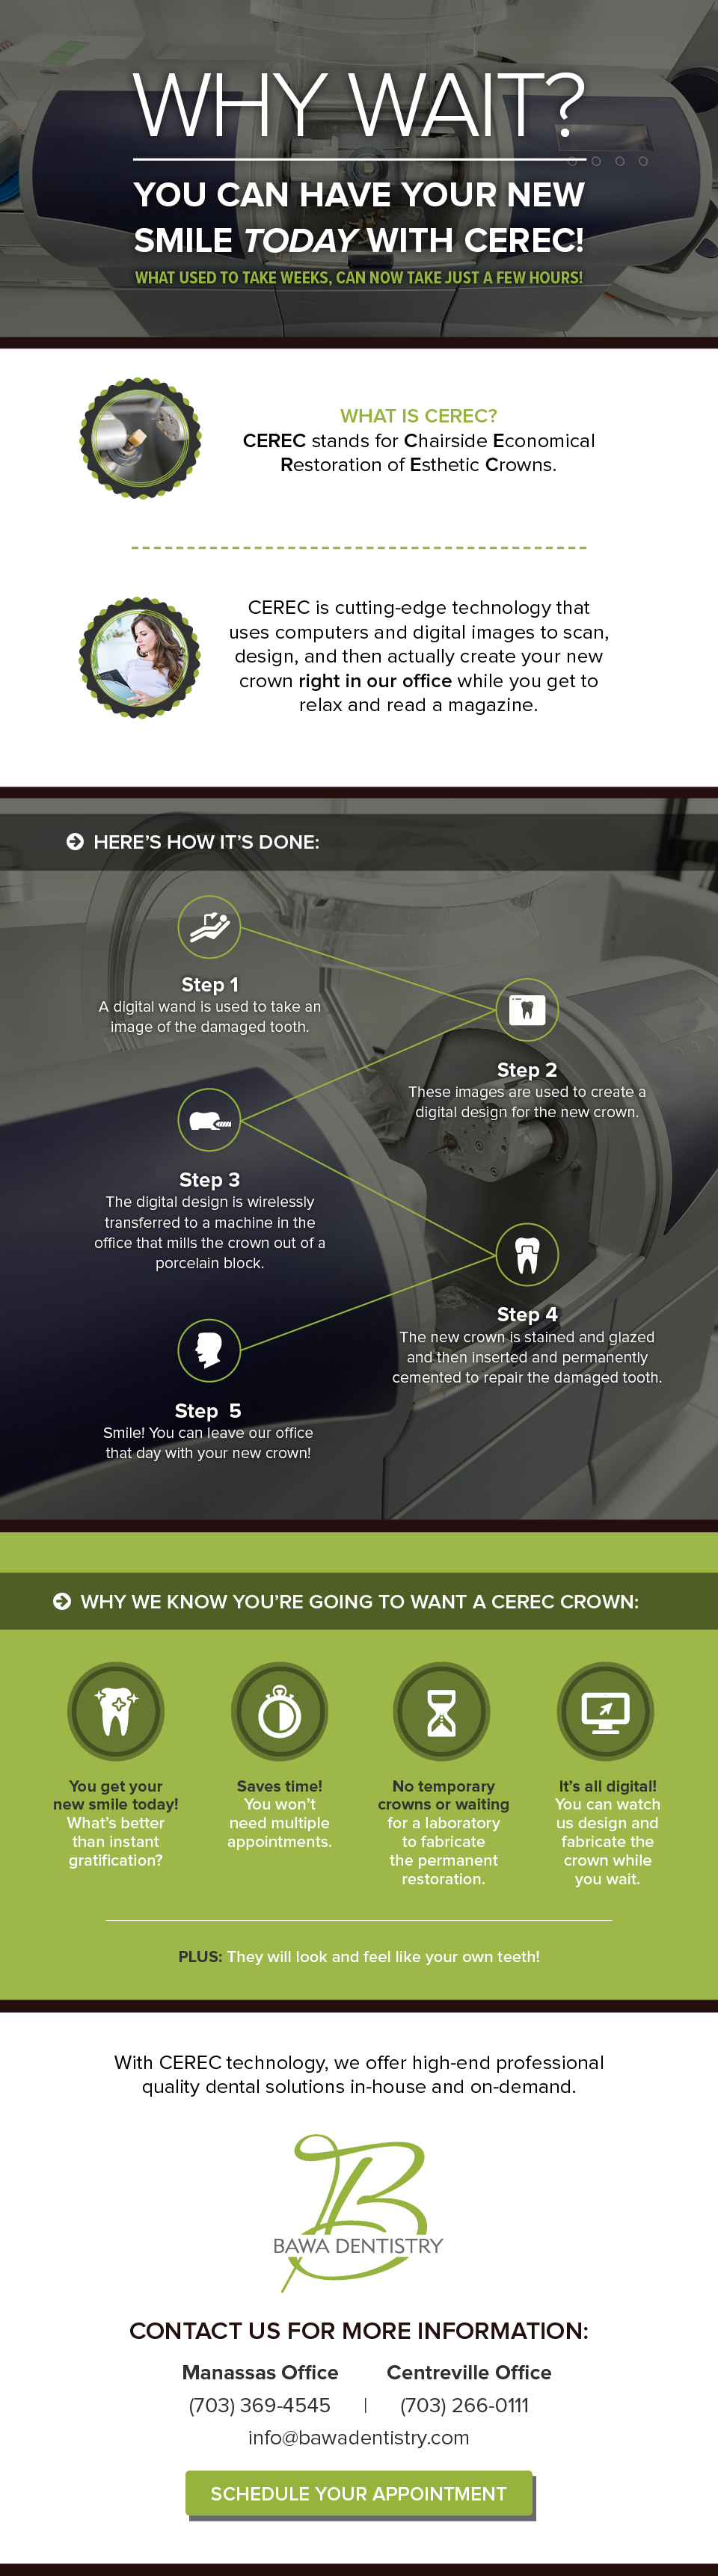 View our CEREC same day dental crowns infographic